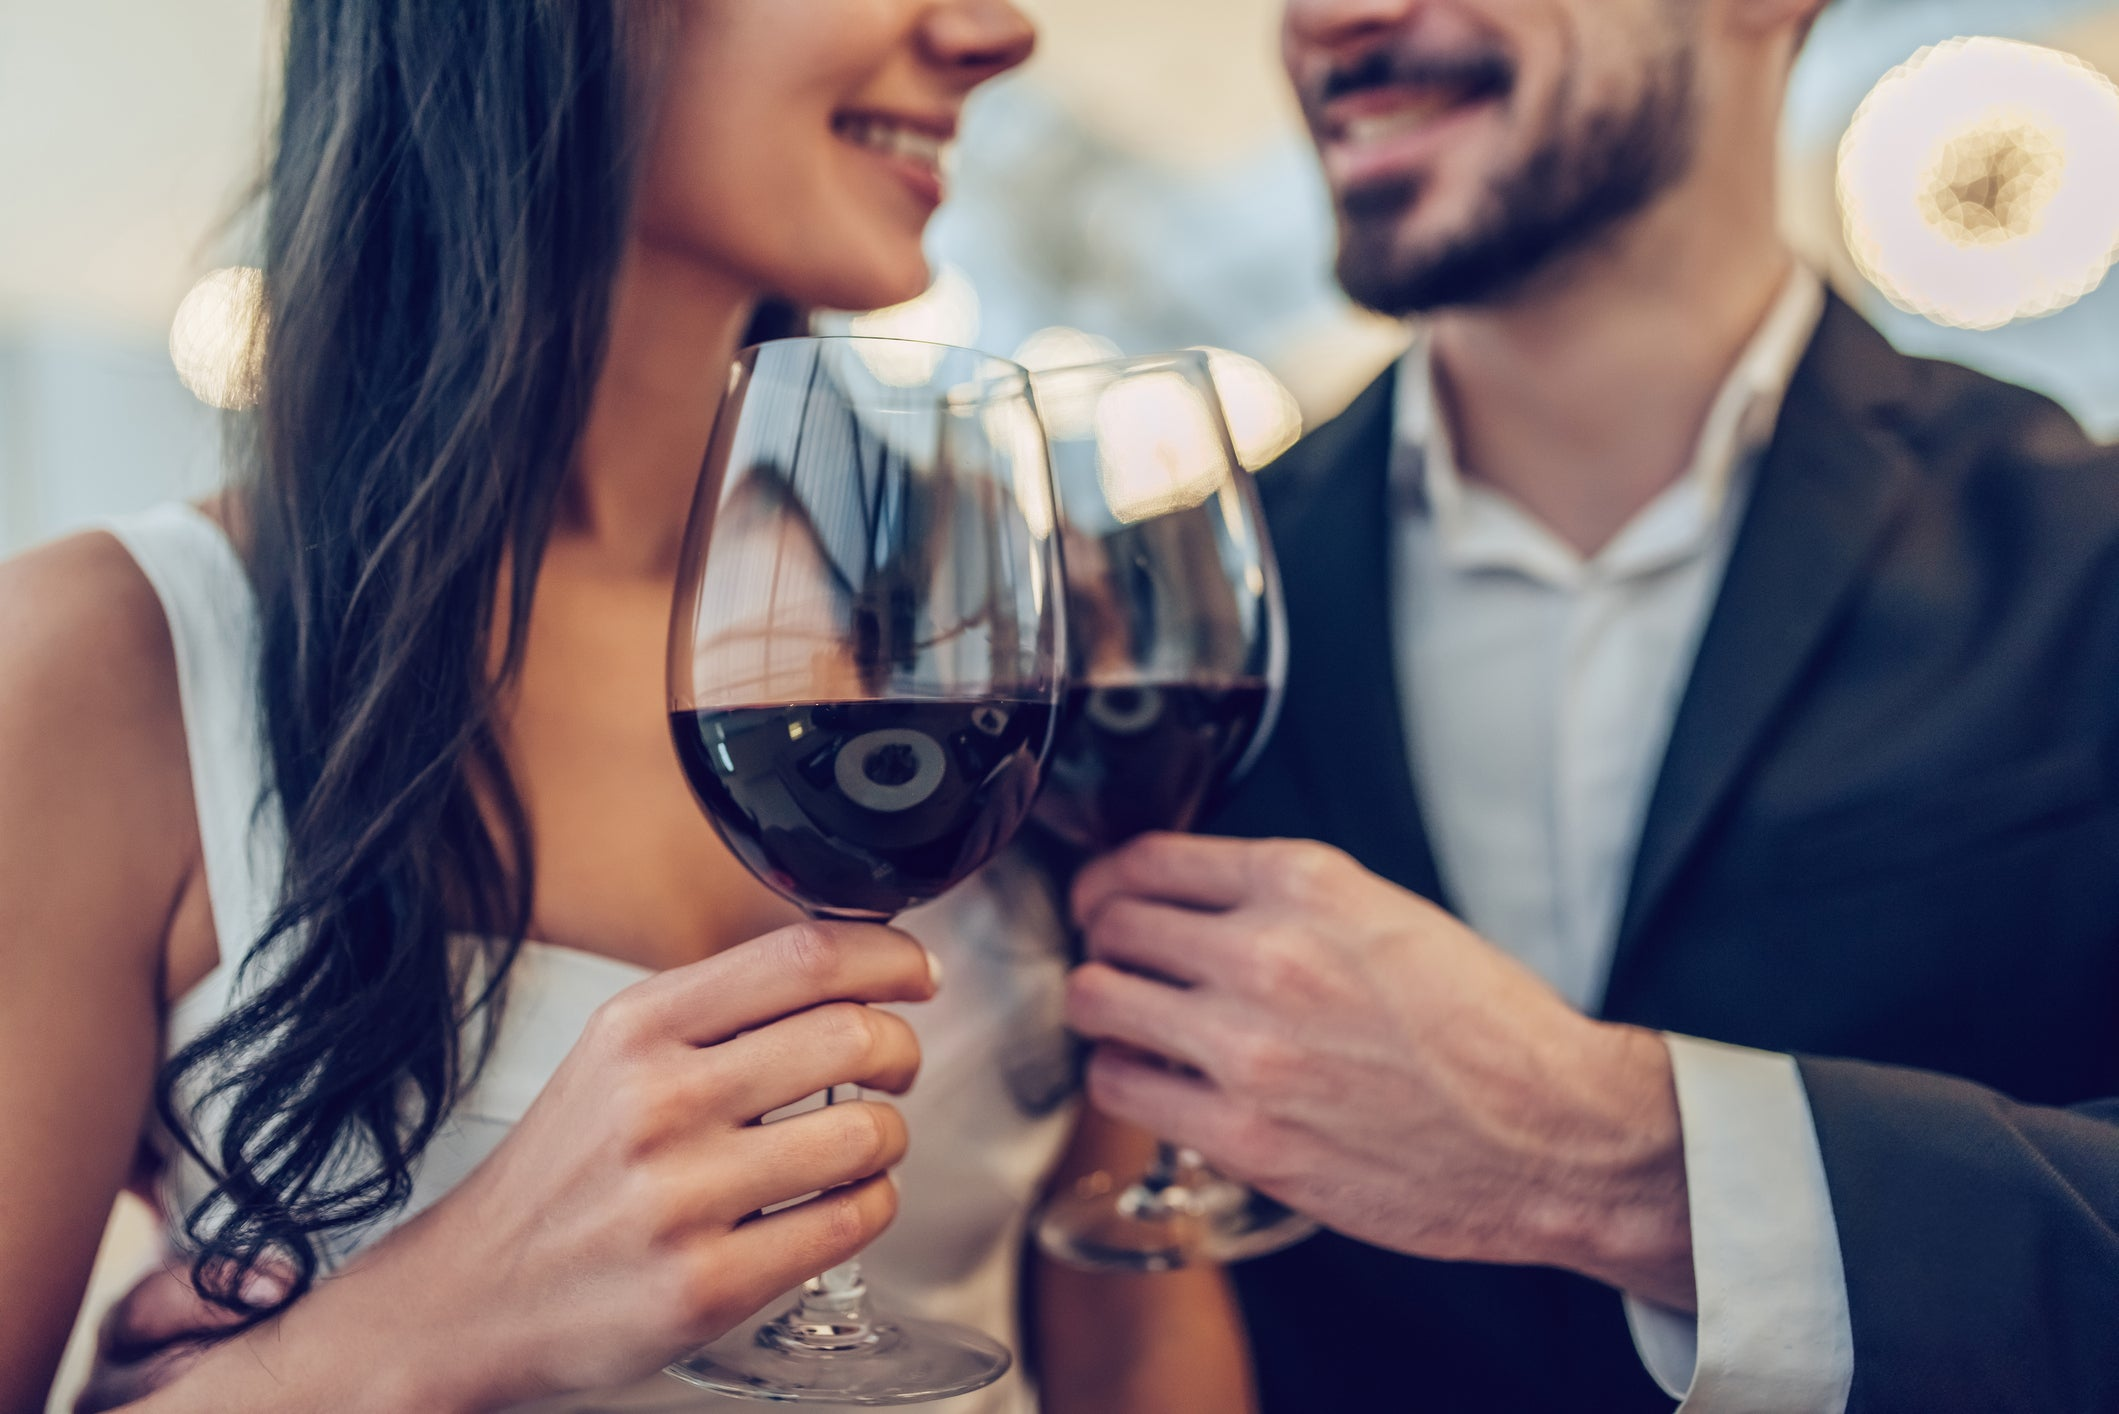 Viral Tinder date story about £15,000 Shard Tinder date wine bill not true